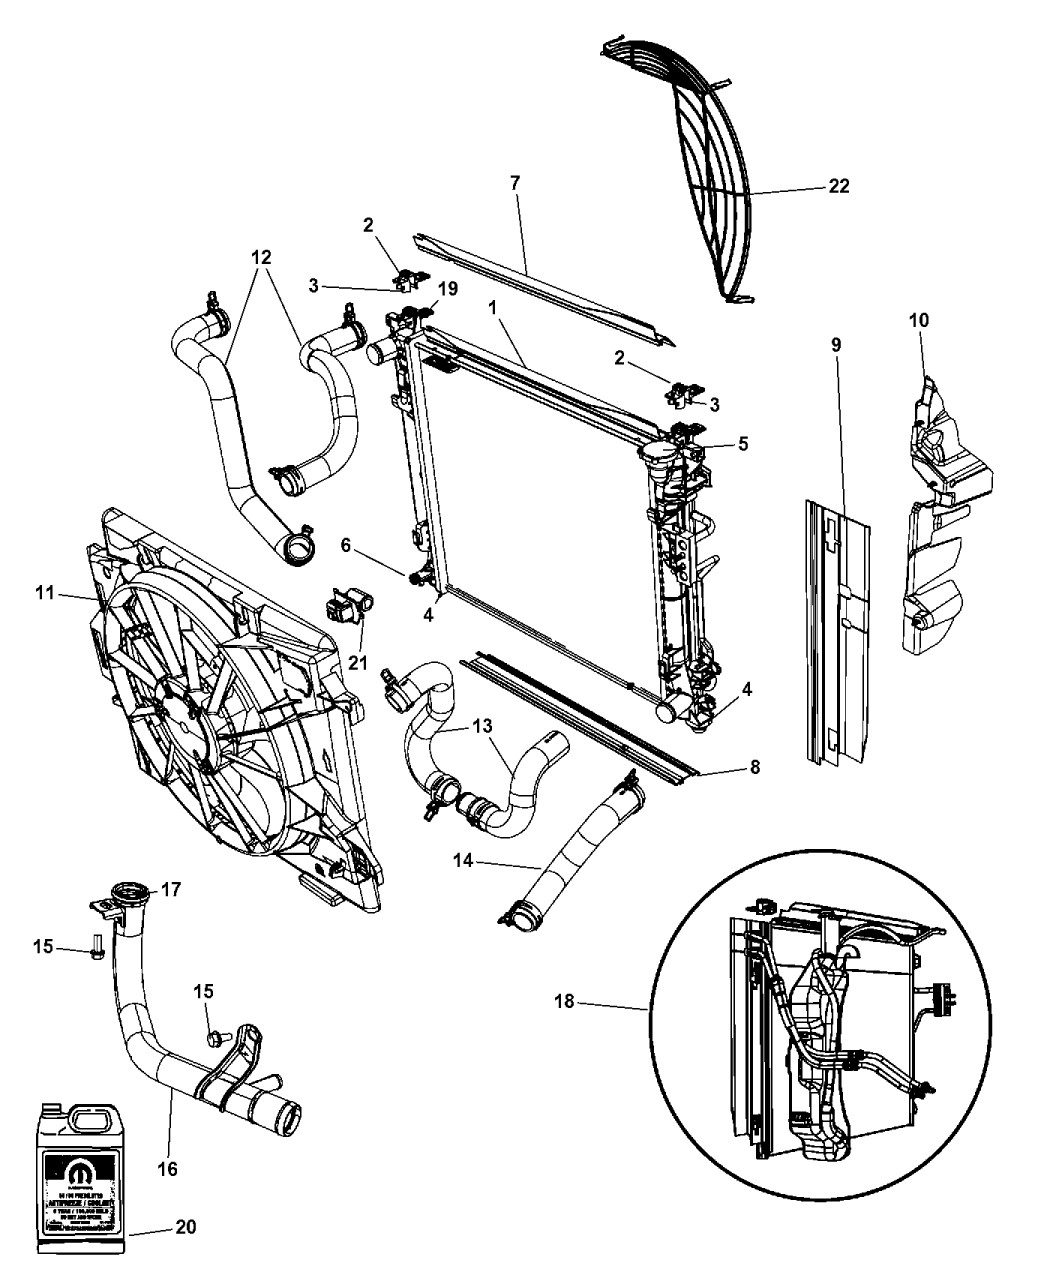 Engine Diagram On A 2010 Chrysler town and Country 3.8lt Ad Genuine Mopar Radiator Engine Cooling Of Engine Diagram On A 2010 Chrysler town and Country 3.8lt